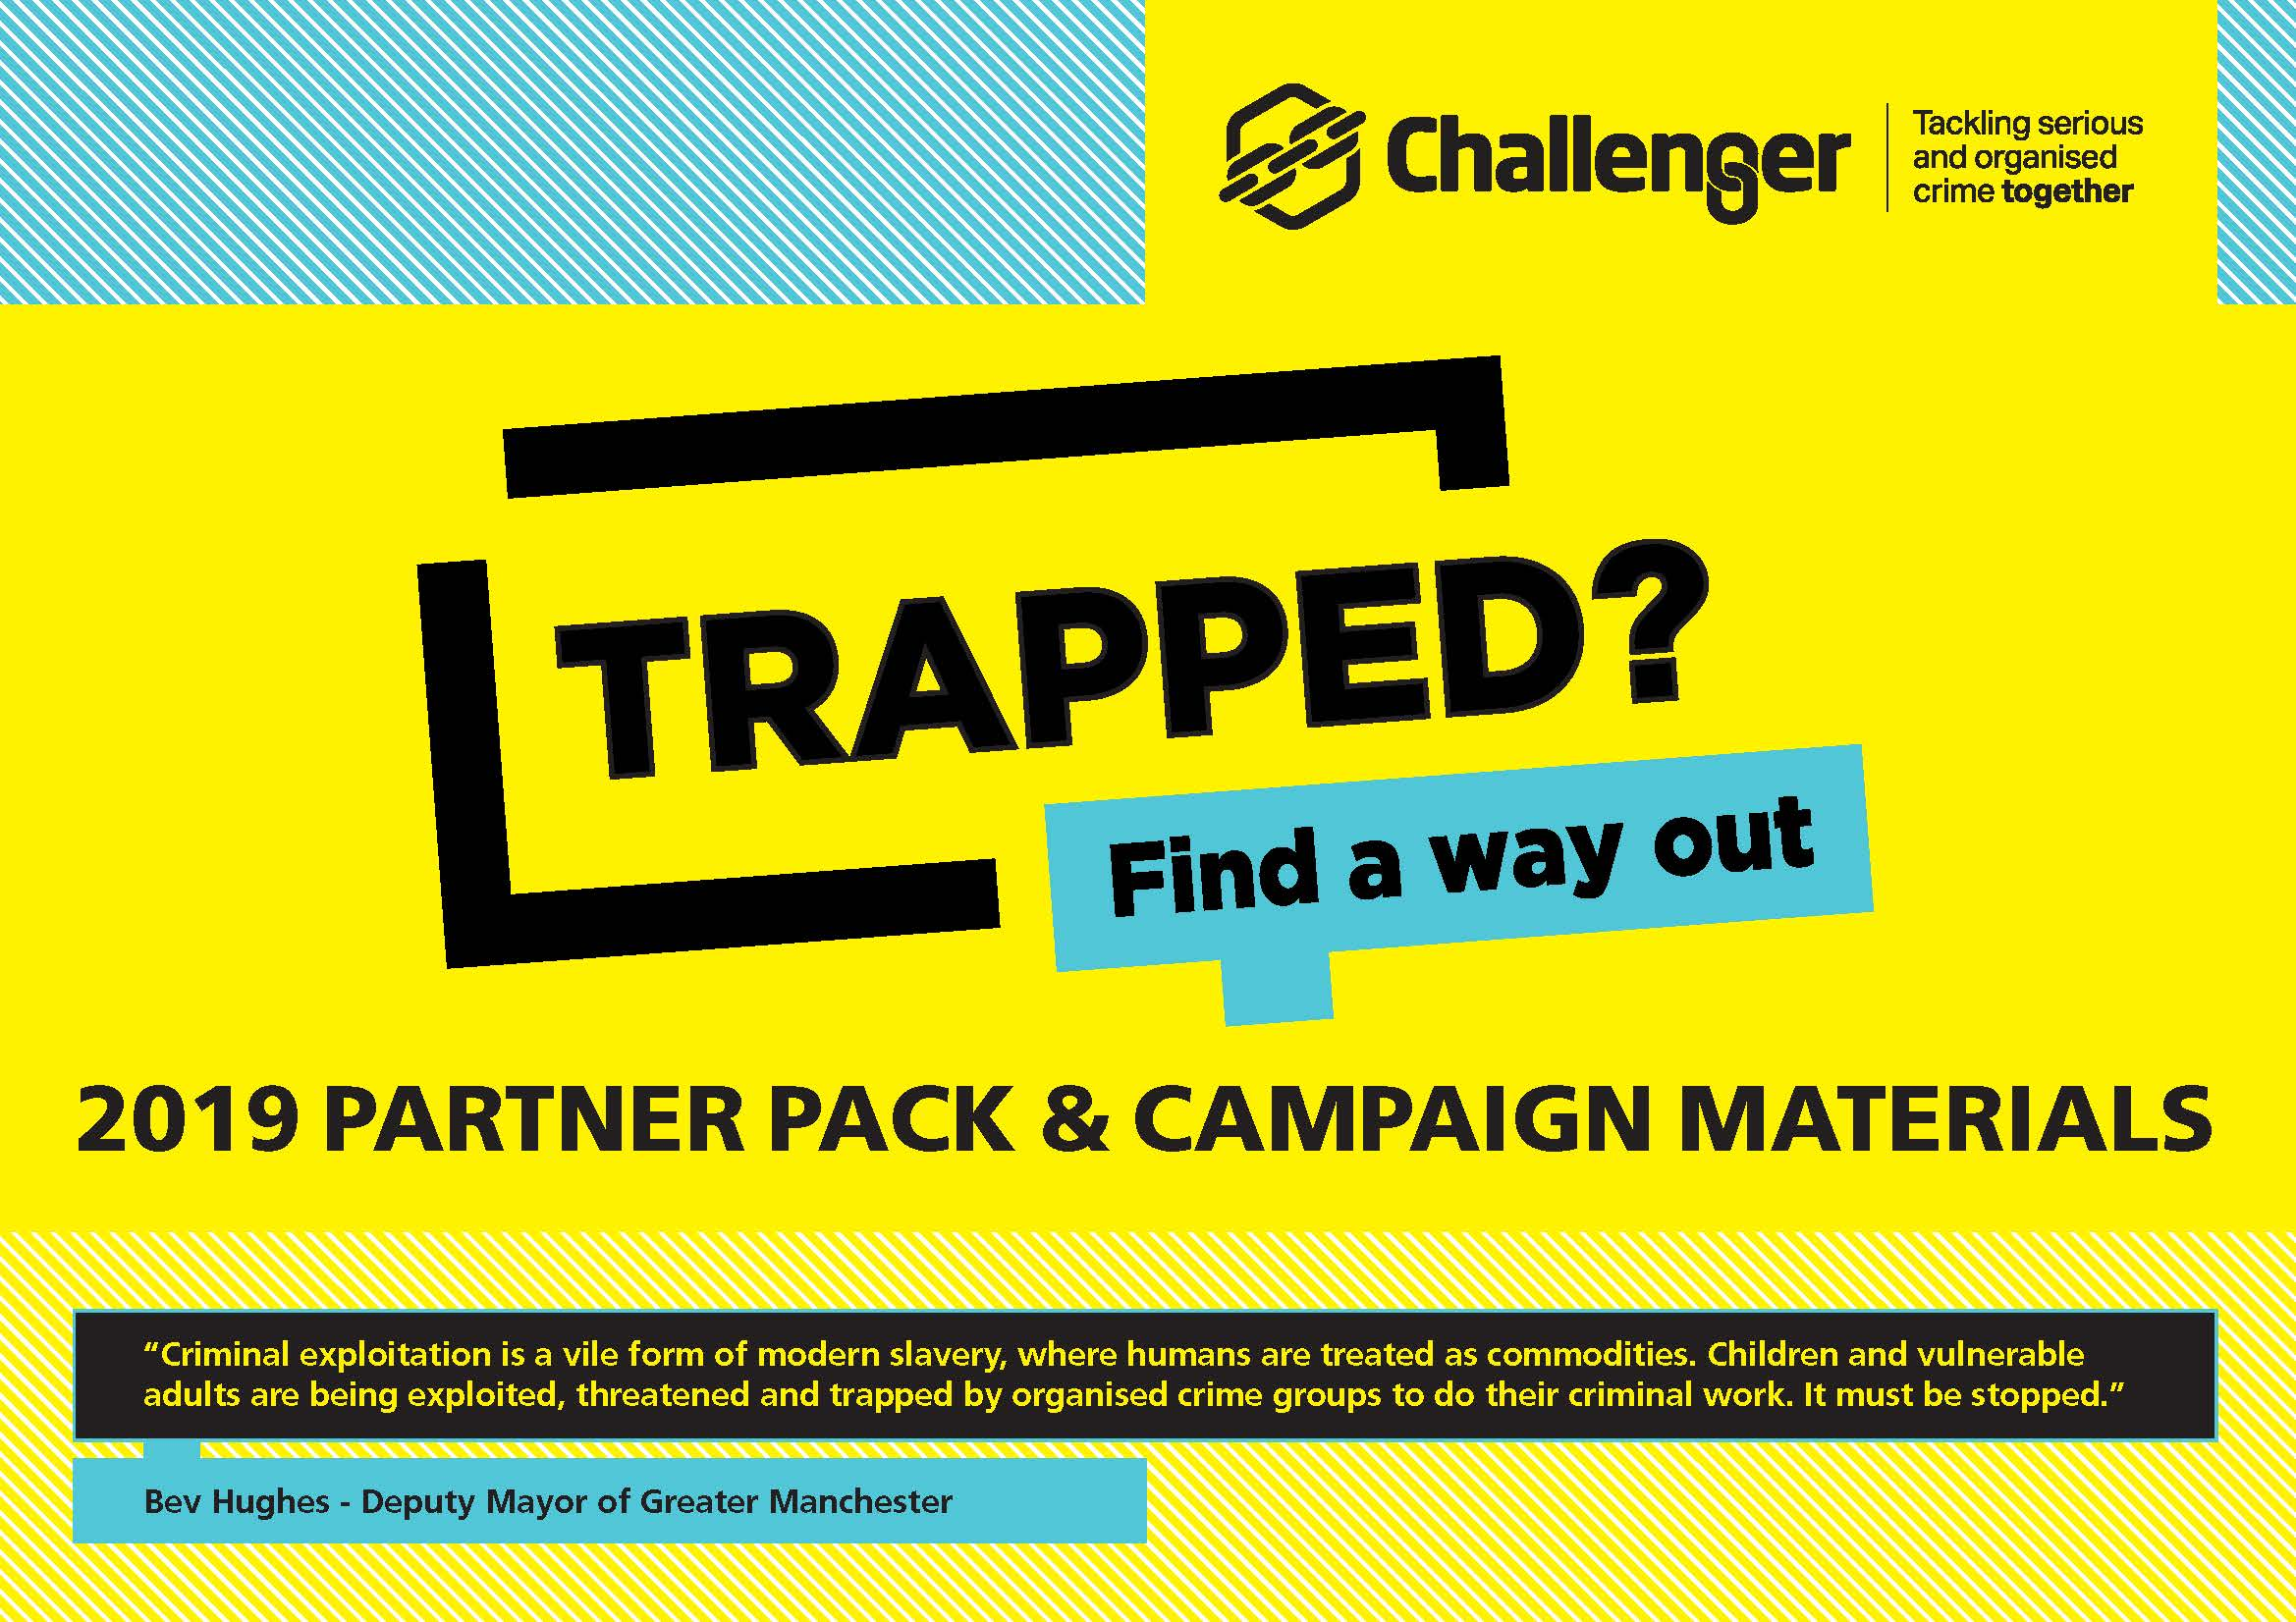 Programme Challenger's 'Trapped' campaign 7 - 14 October